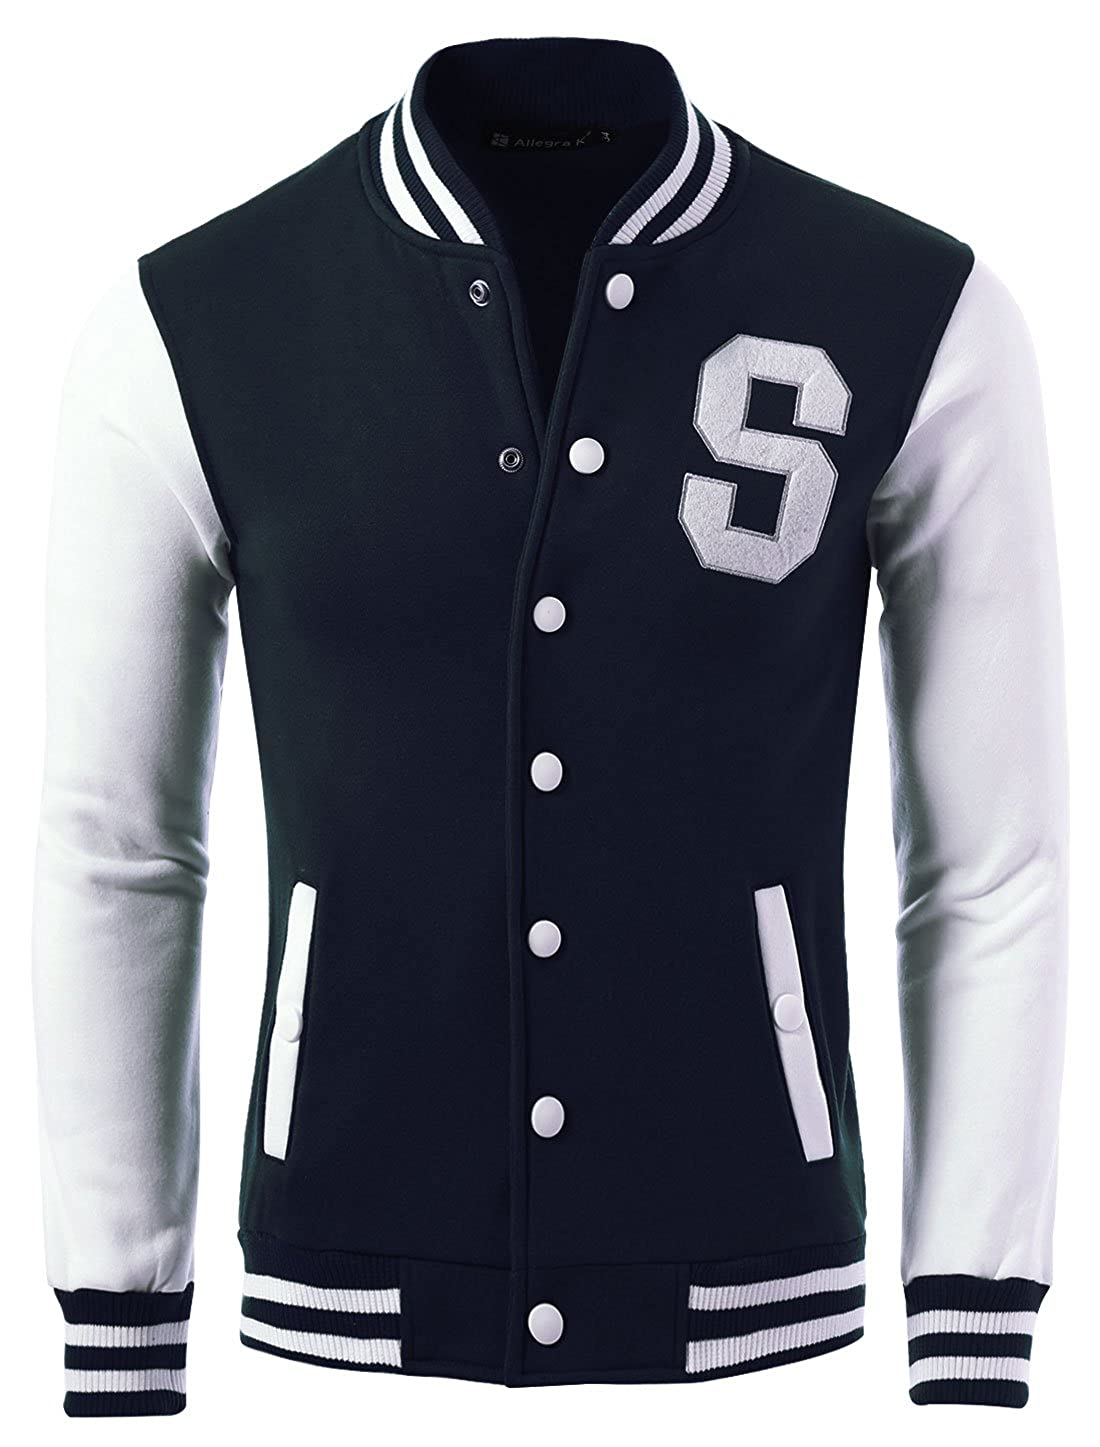 uxcell® Men Long Sleeves Button Front Letters Varsity Jacket g13070100ux0028